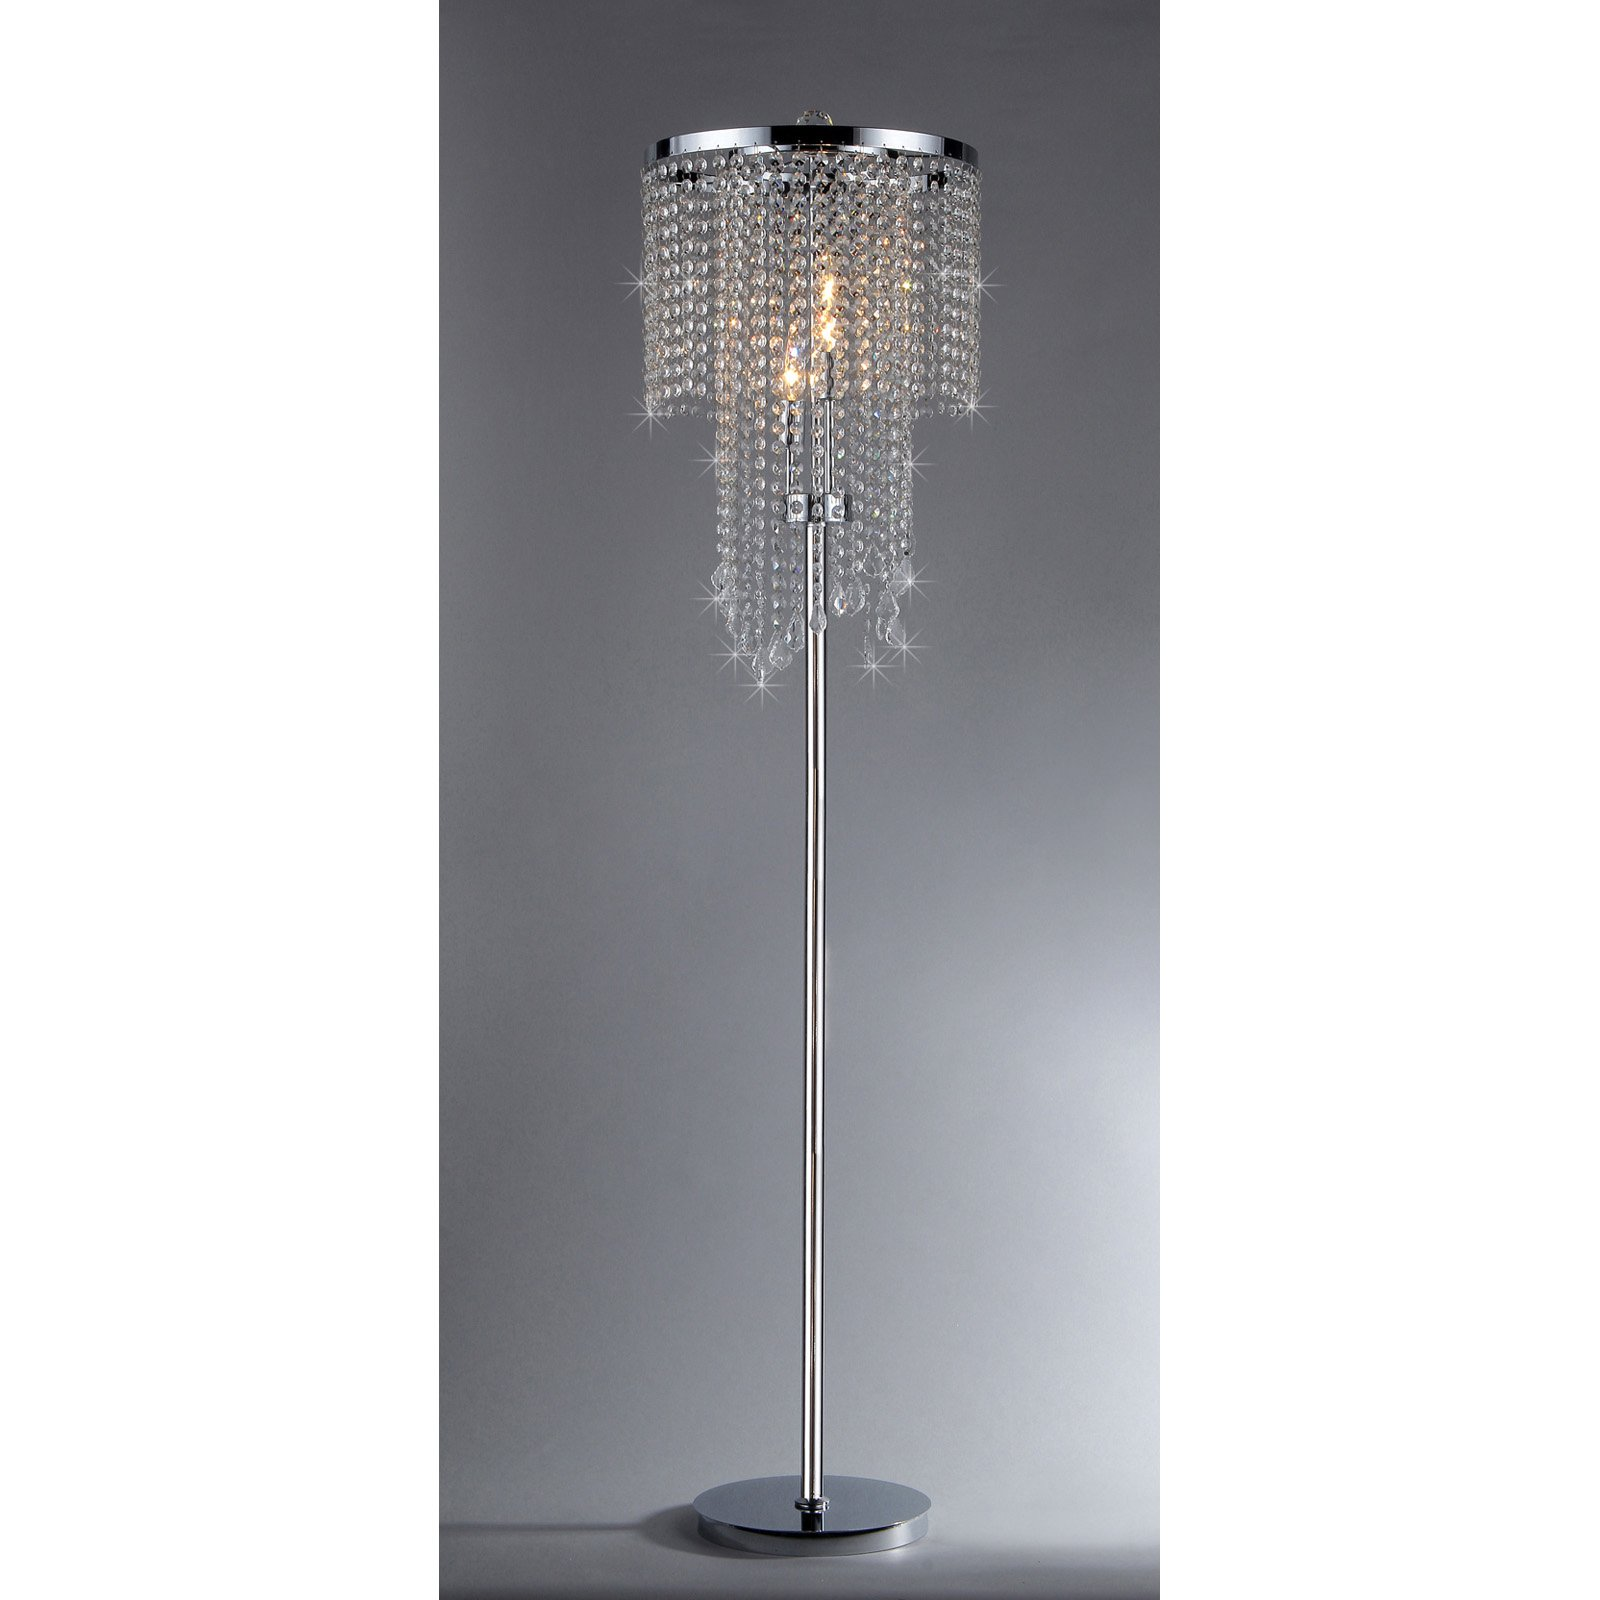 Warehouse of Tiffany FL9262 Crystal Floor Lamp Walmart